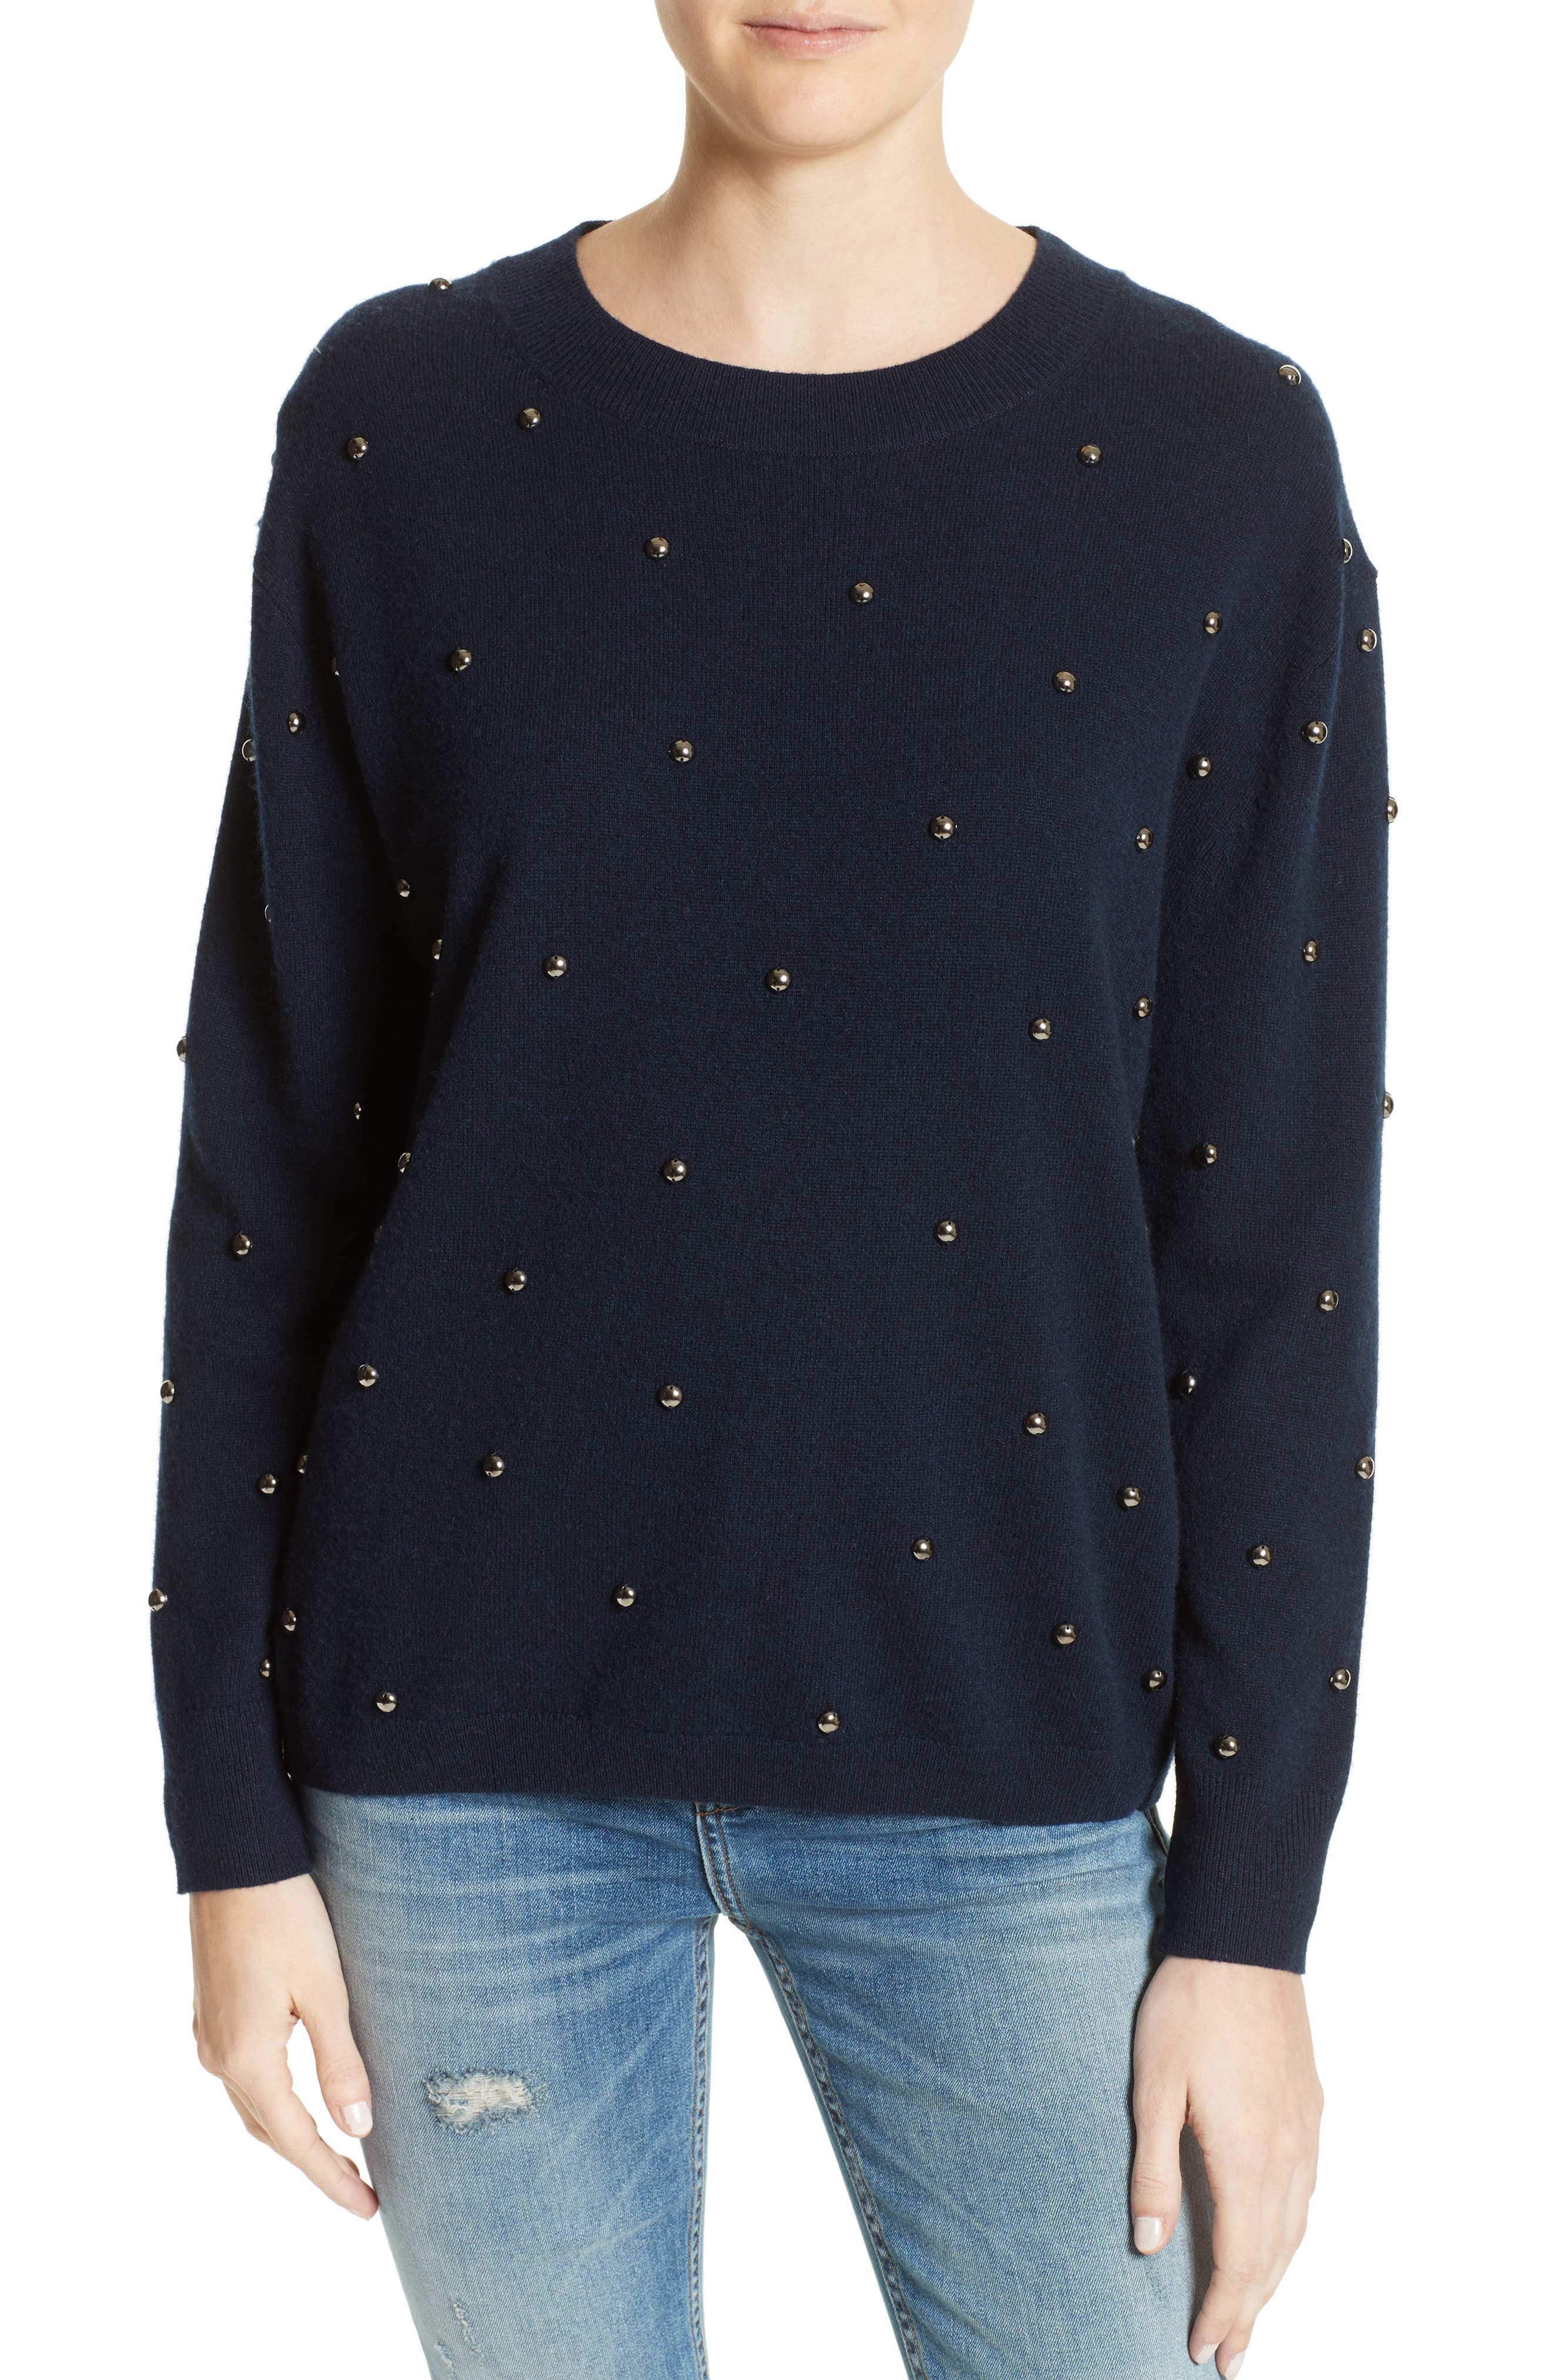 Main Image - The Kooples Embellished Wool & Cashmere Sweater